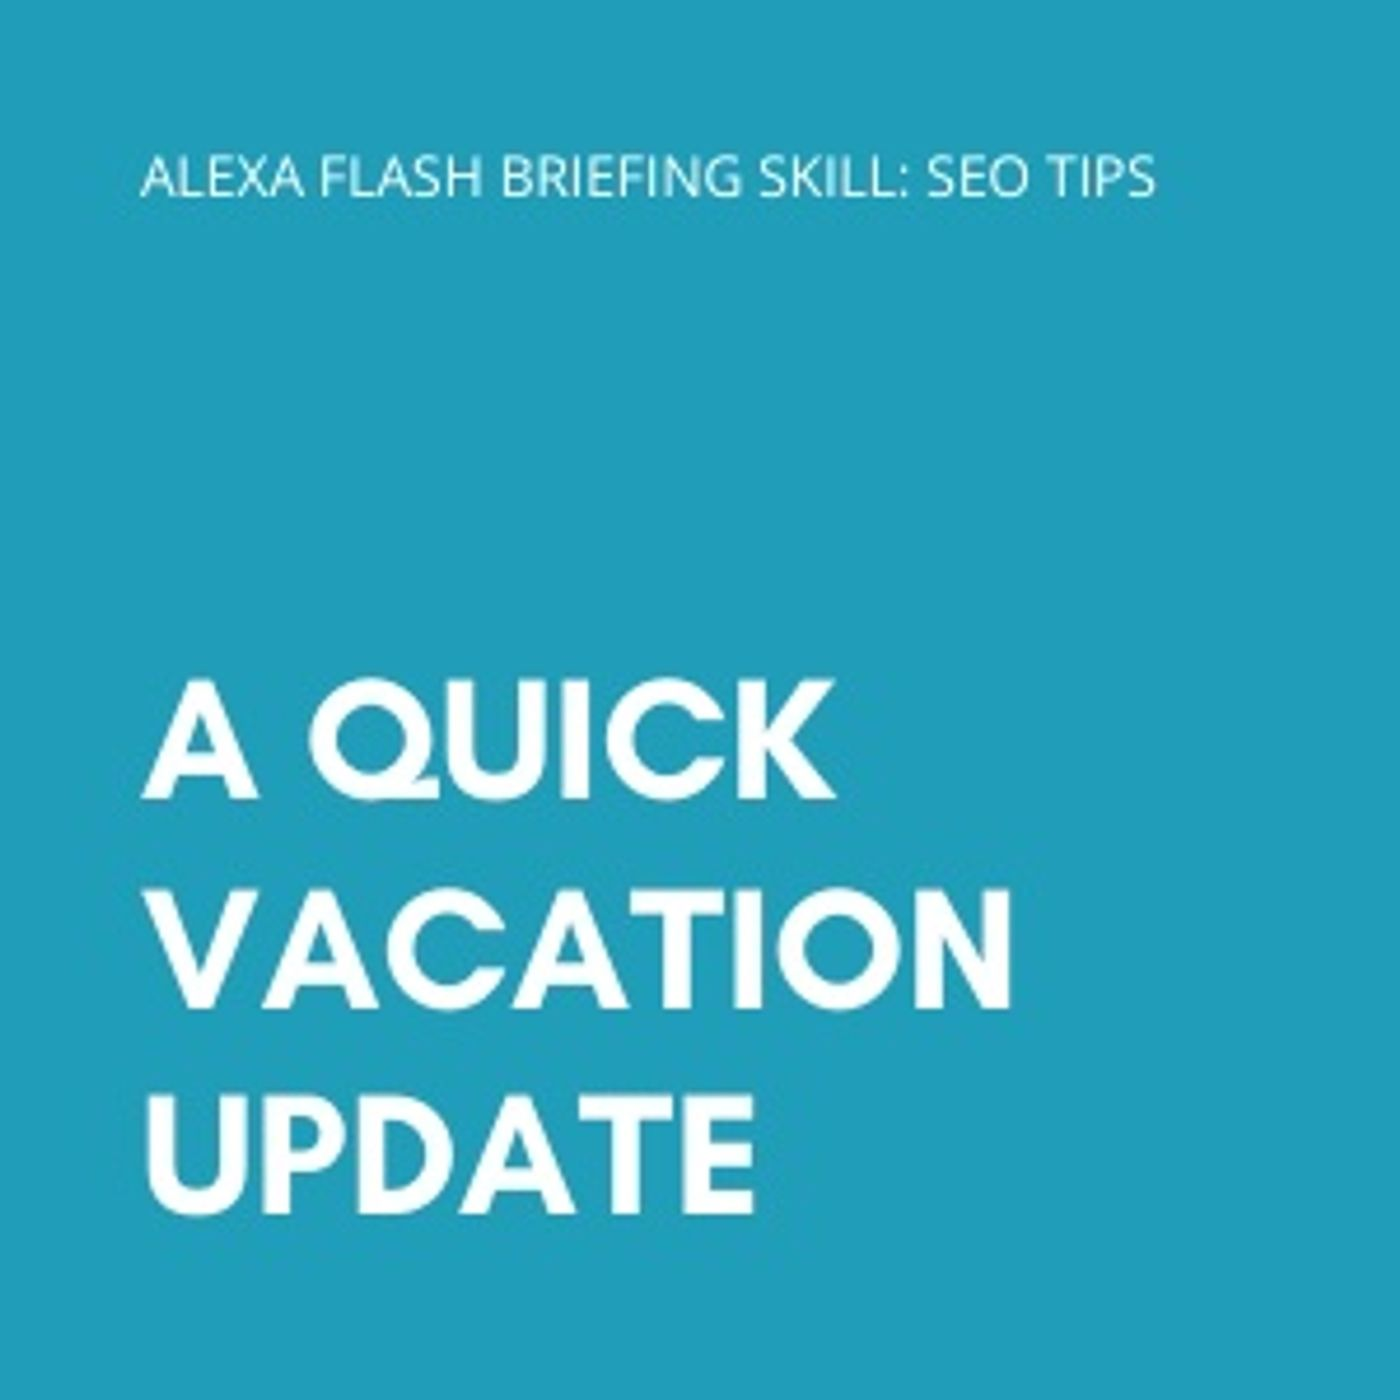 A quick vacation update